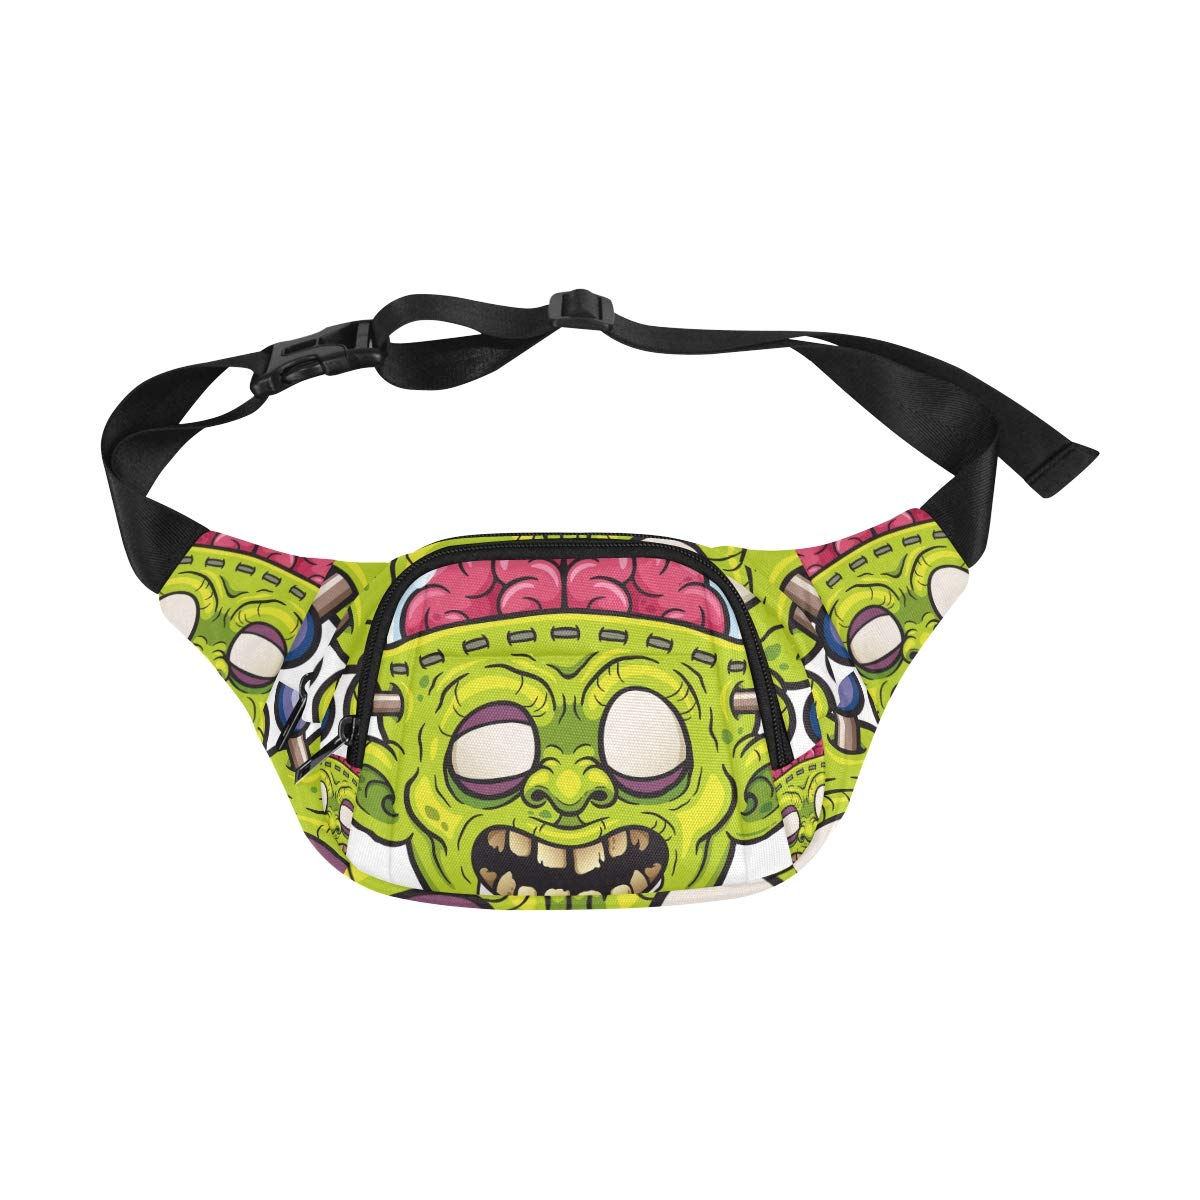 Frightened Creepy Zombie Fenny Packs Waist Bags Adjustable Belt Waterproof Nylon Travel Running Sport Vacation Party For Men Women Boys Girls Kids